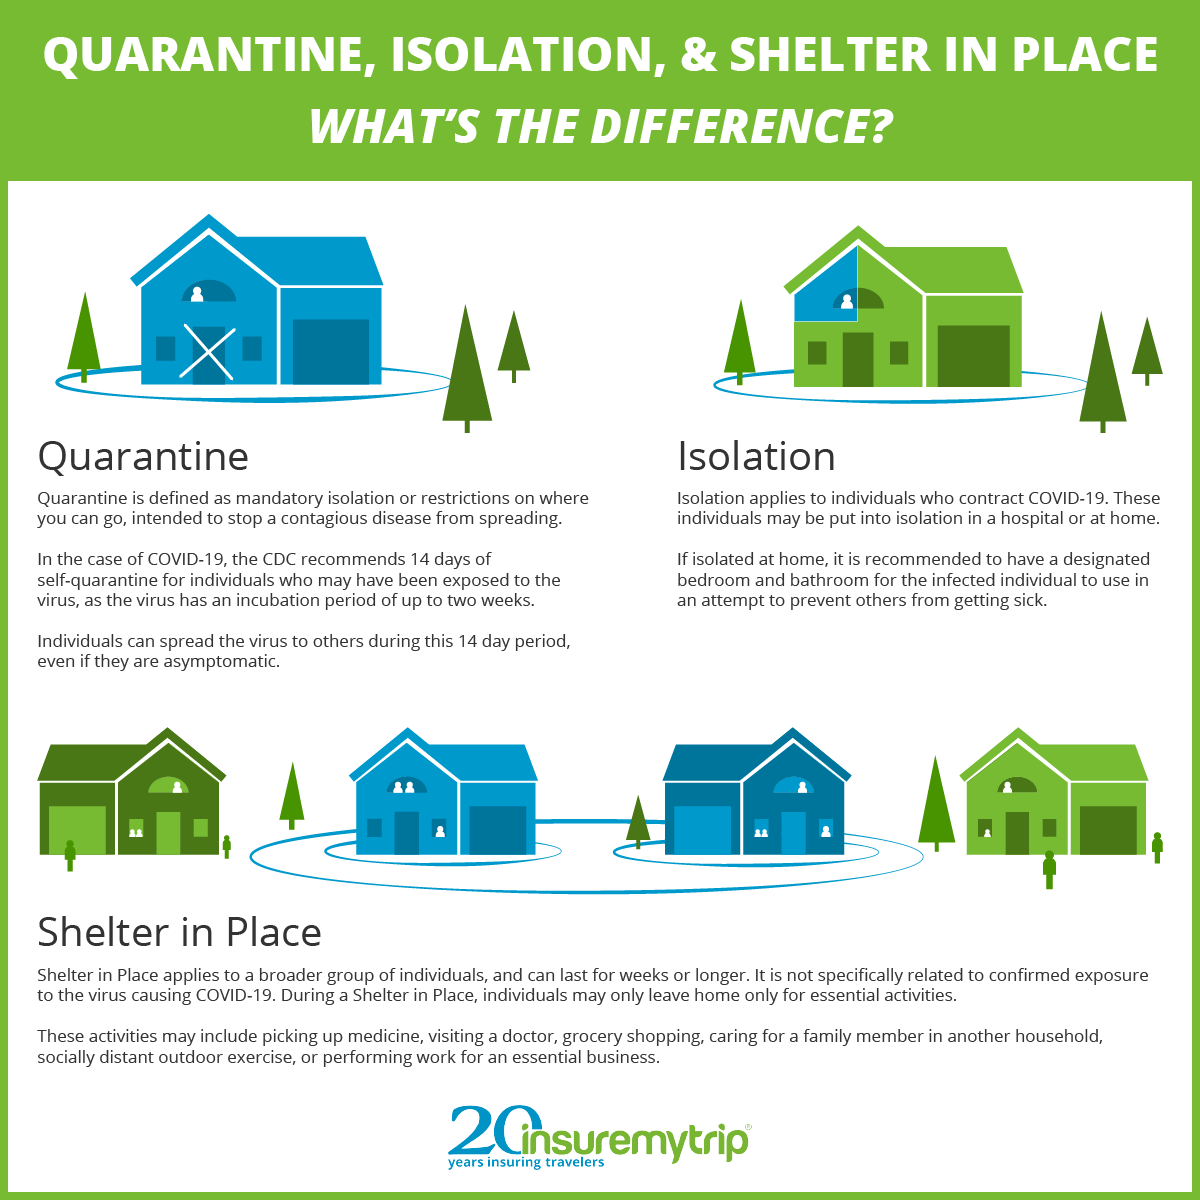 The Difference Between Quarantine, Isolation, & Shelter-in-Place